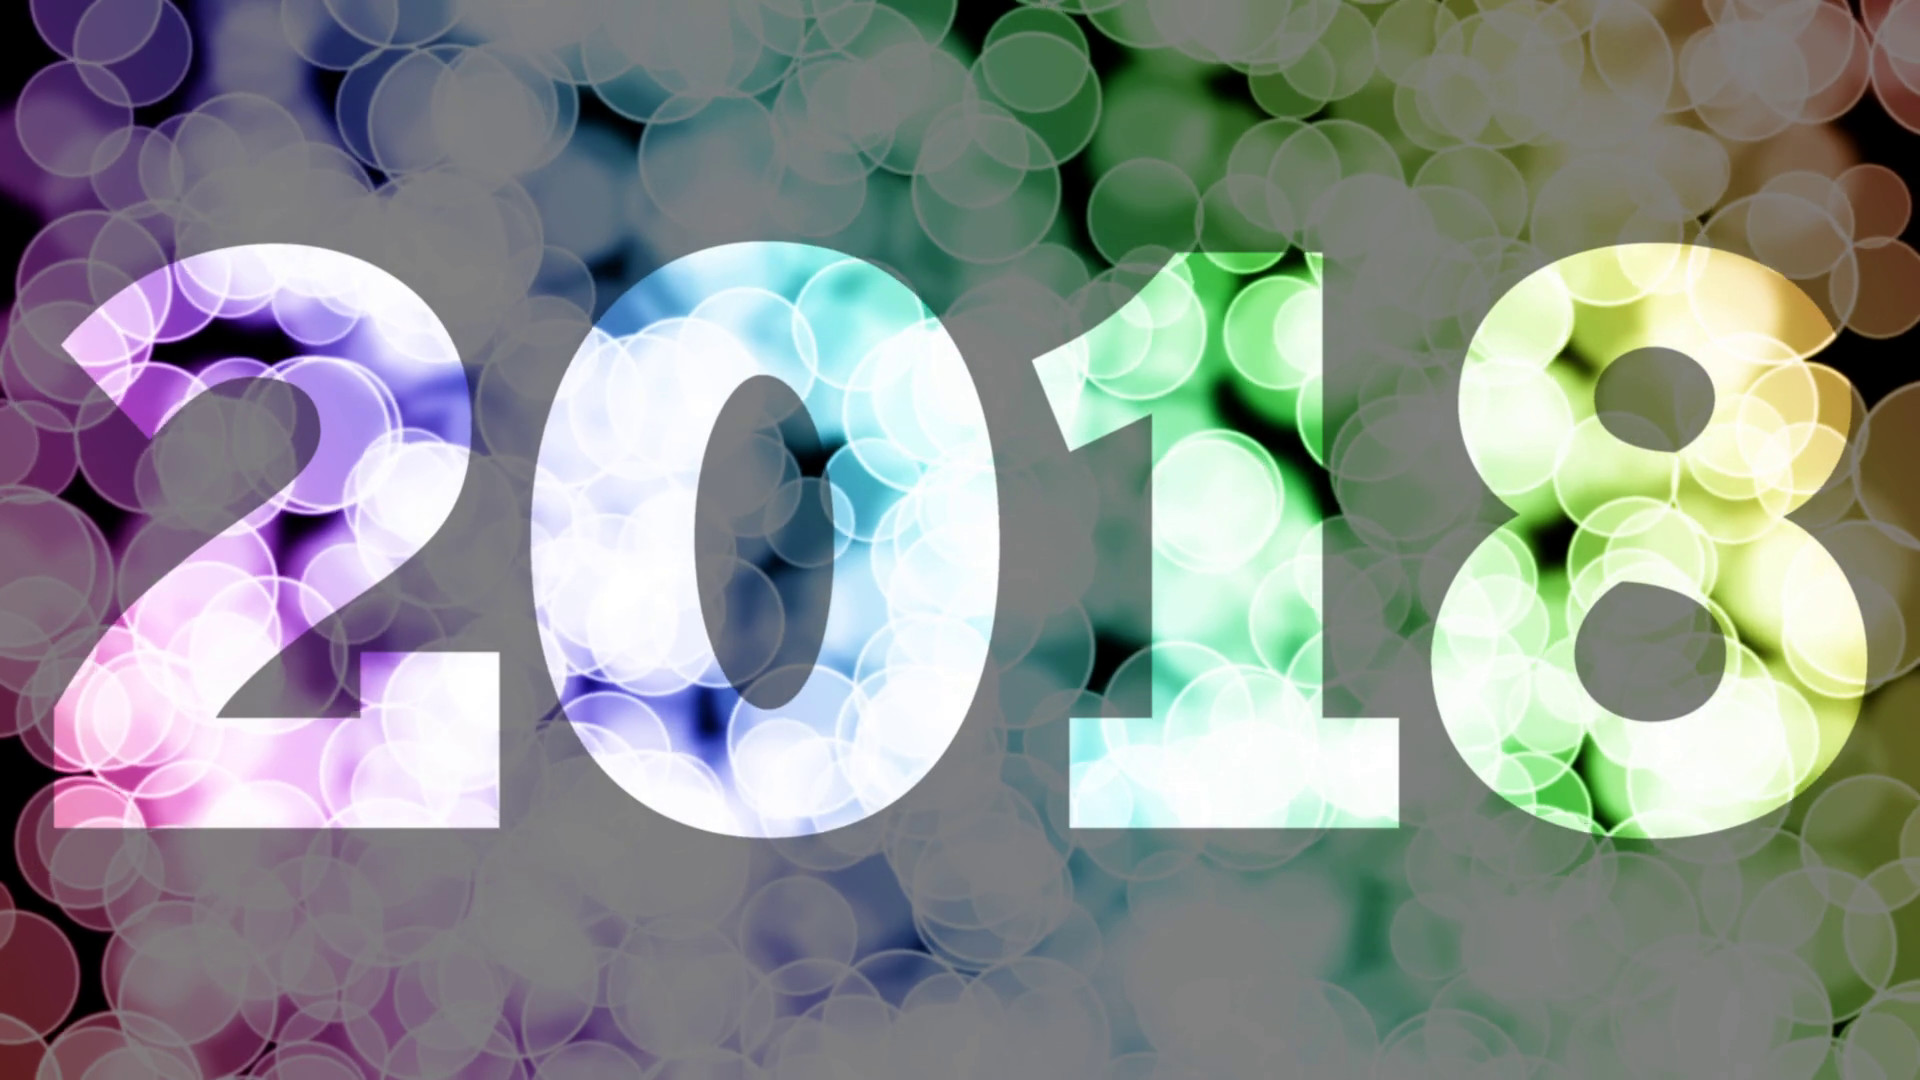 New Year Backgrounds 2018